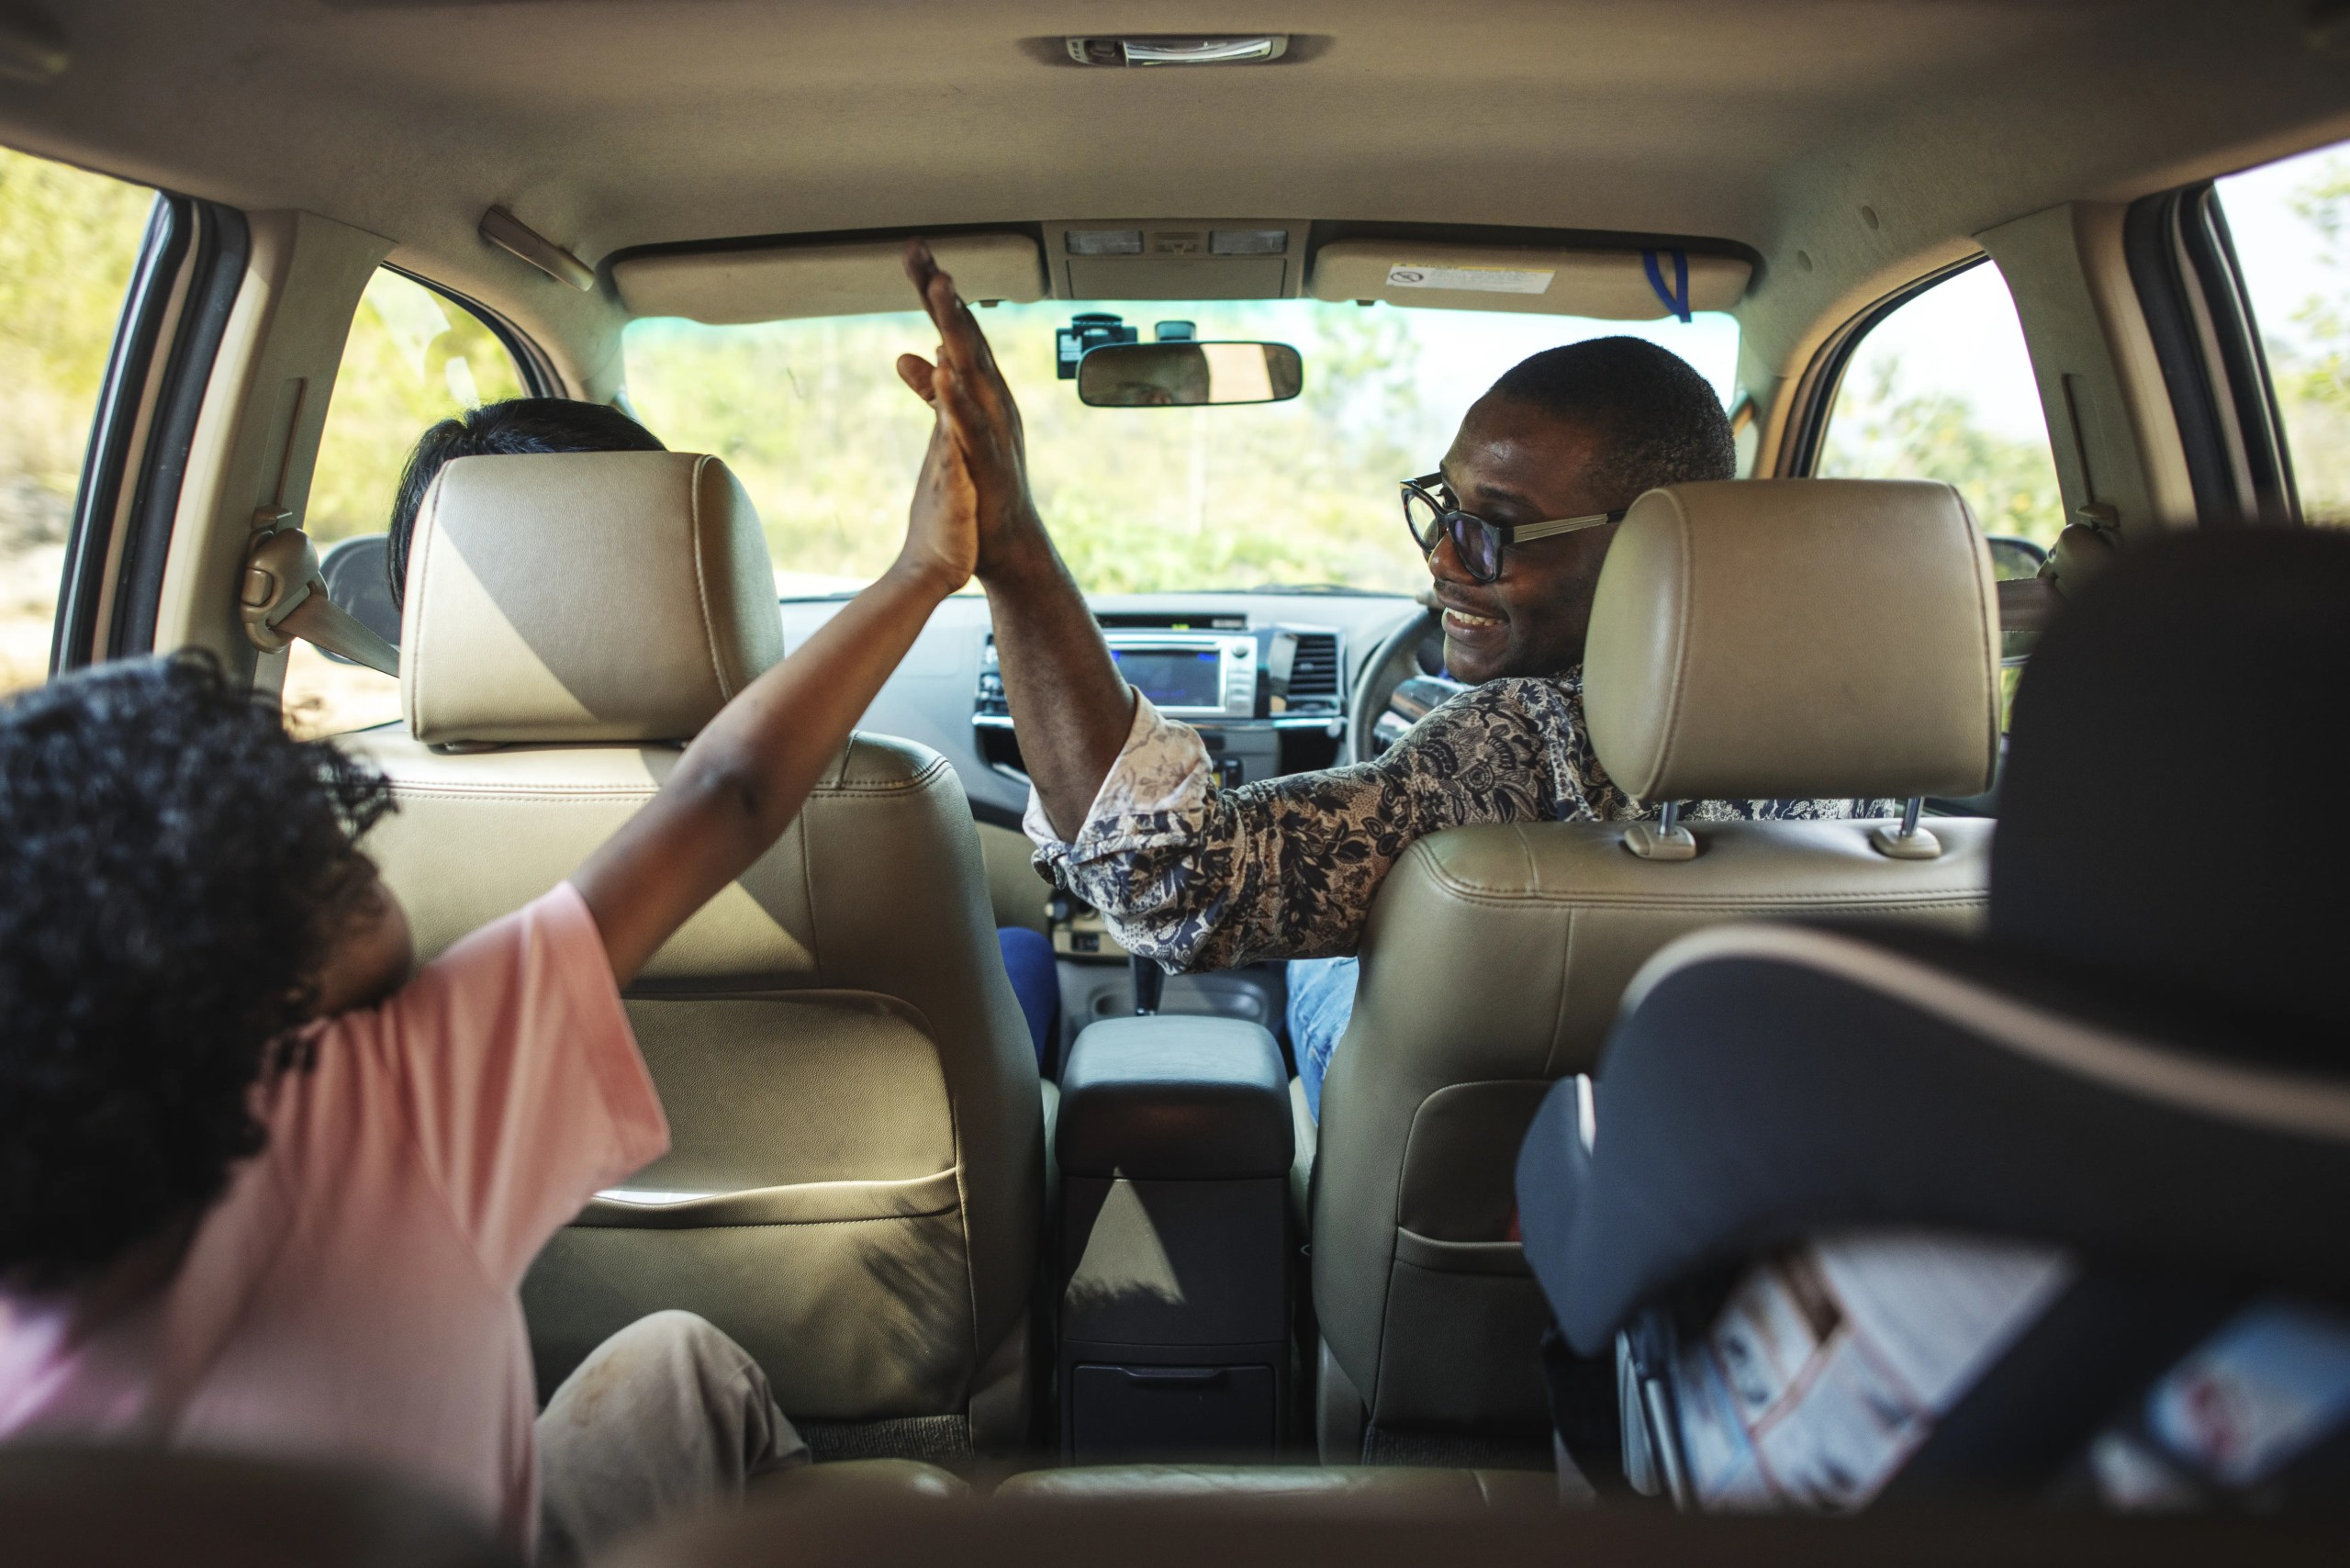 5 Fun and Simple Road Trip Games to Play with Your Kids